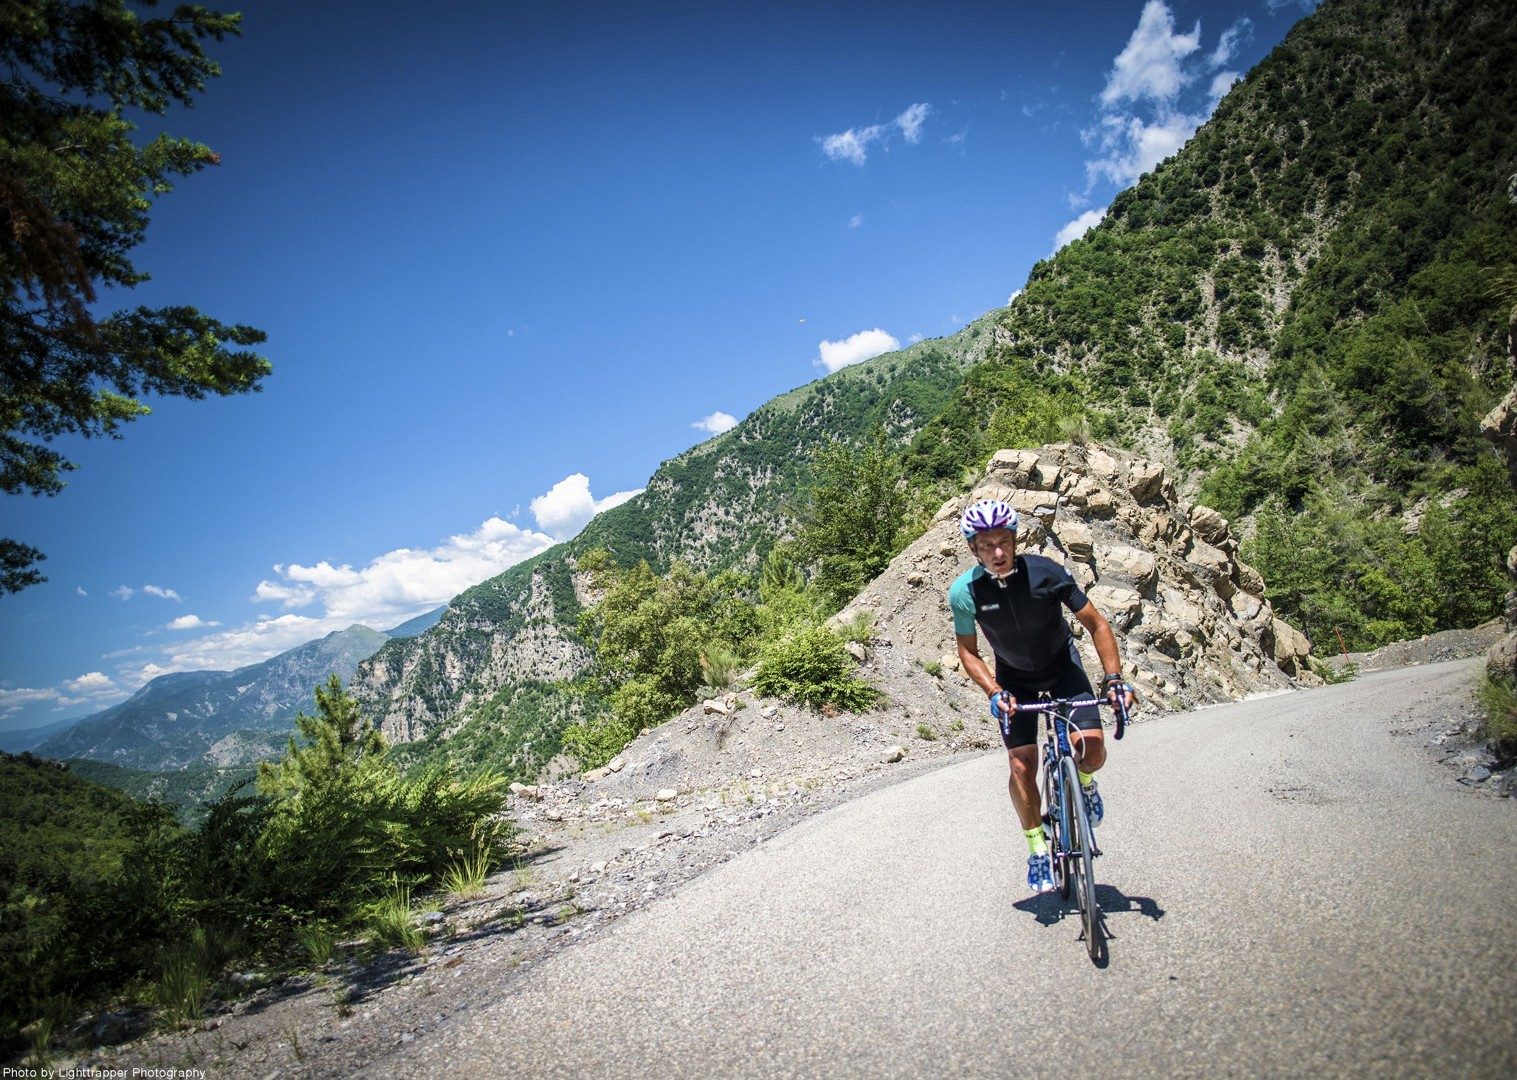 challenging-climbs-france-road-bike-skedaddle.jpg - NEW! France - Provence - Alpes Maritimes - Road Cycling